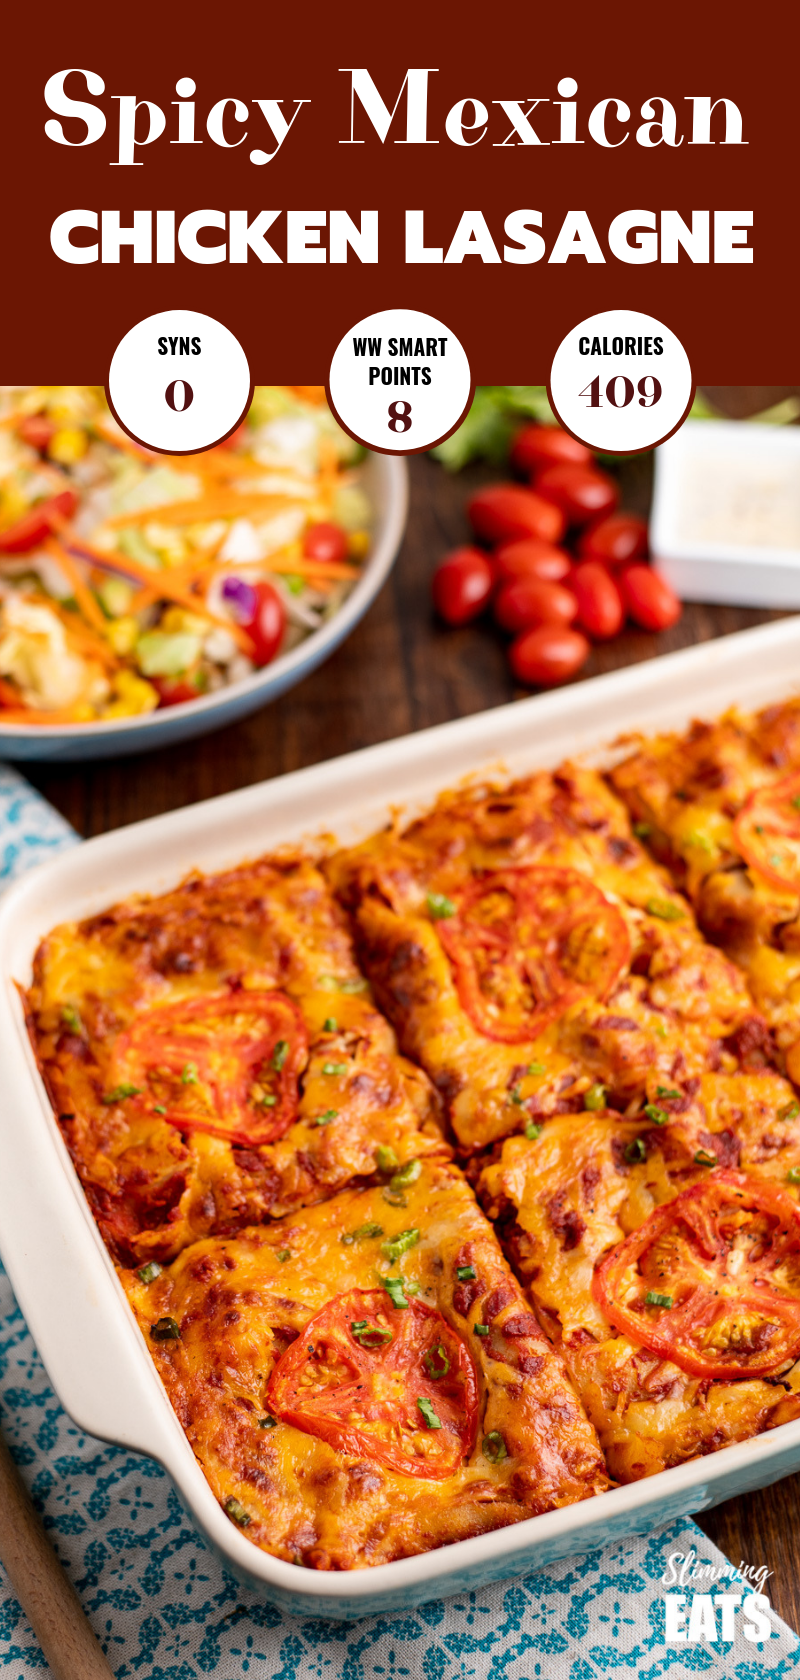 spicy Mexican chicken lasagne sliced in oven proof dish with salad on side pin image